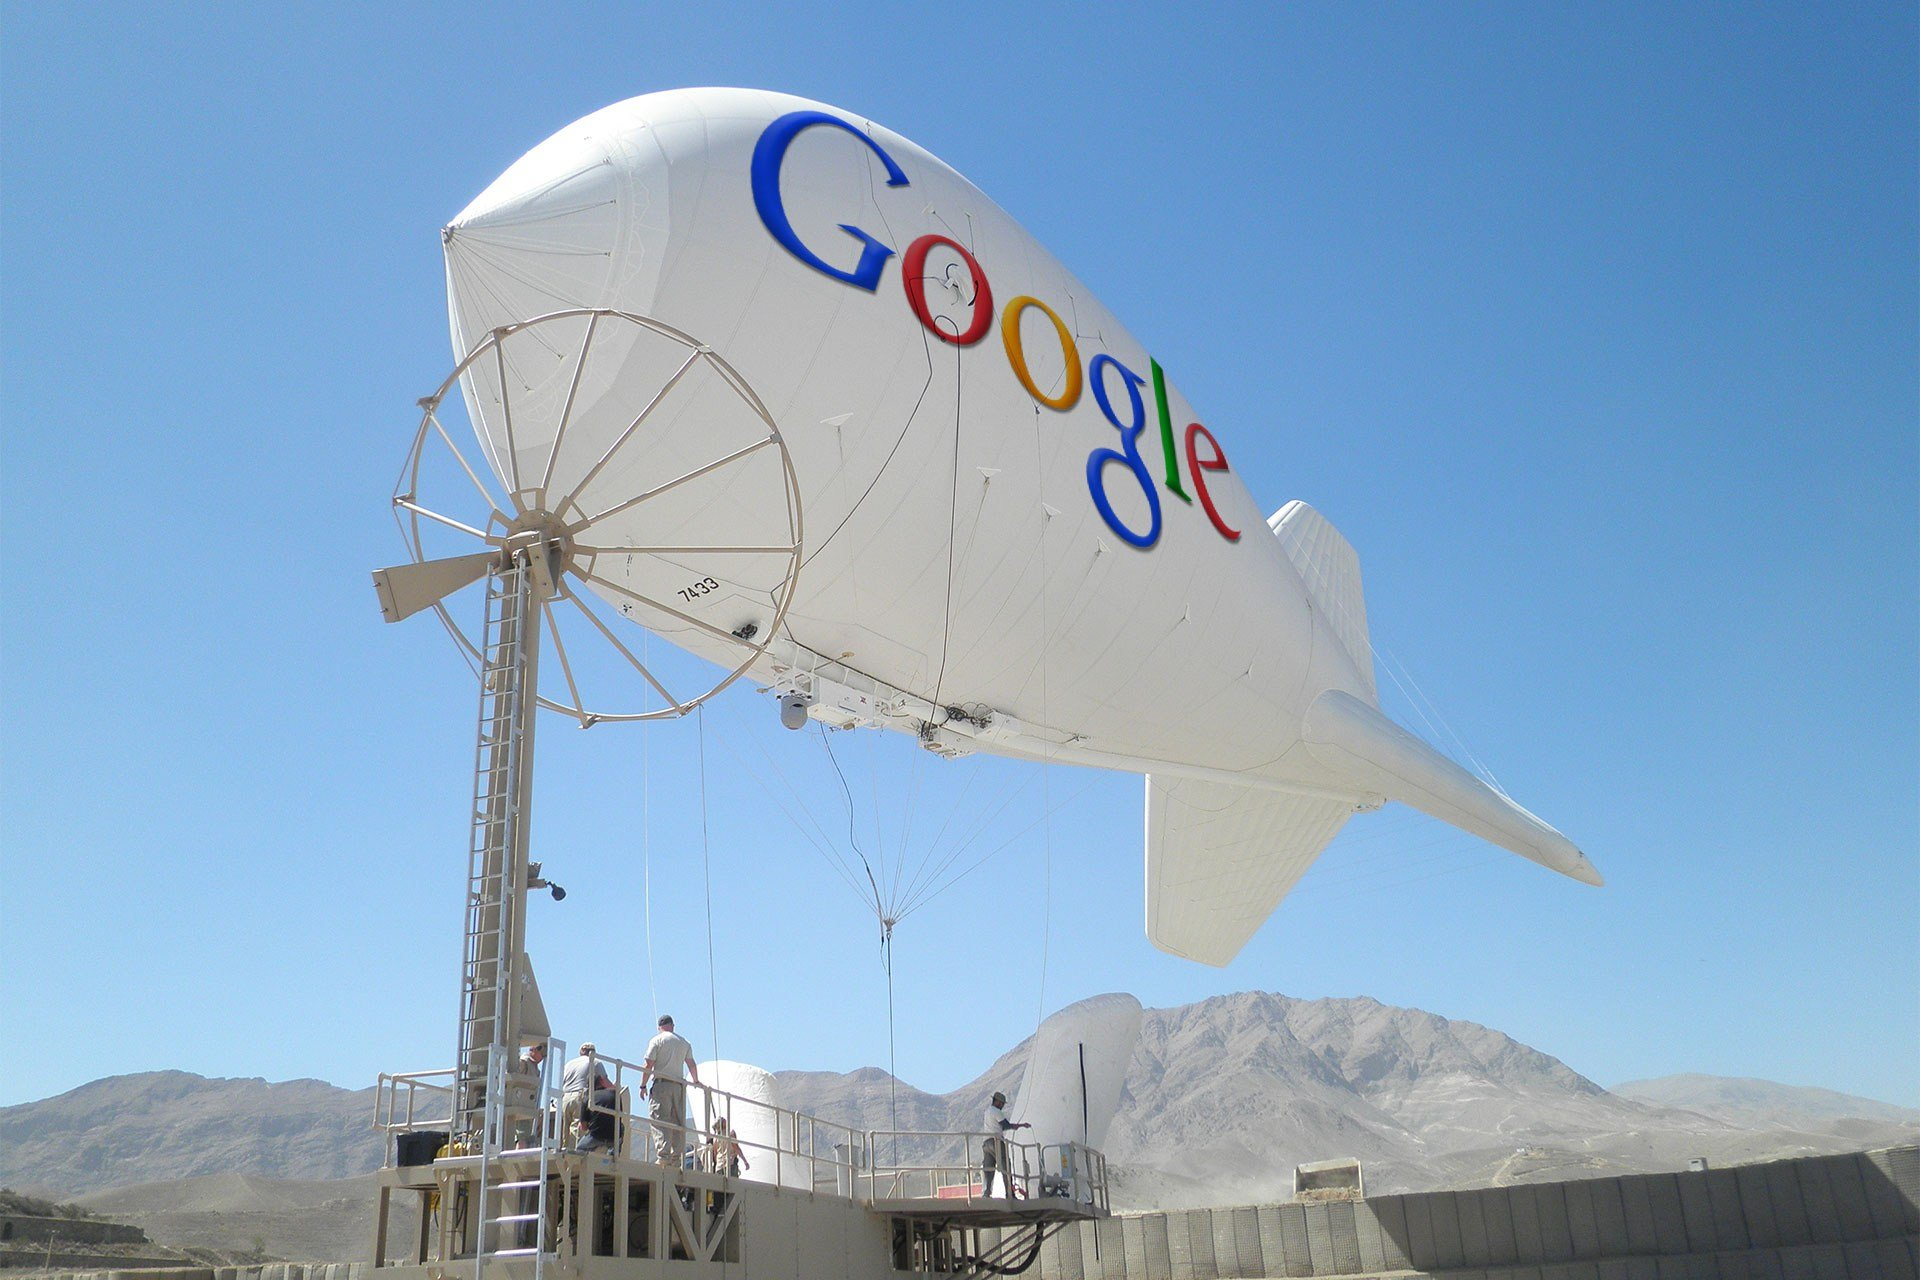 Google Blimps Bring Internet to Africa